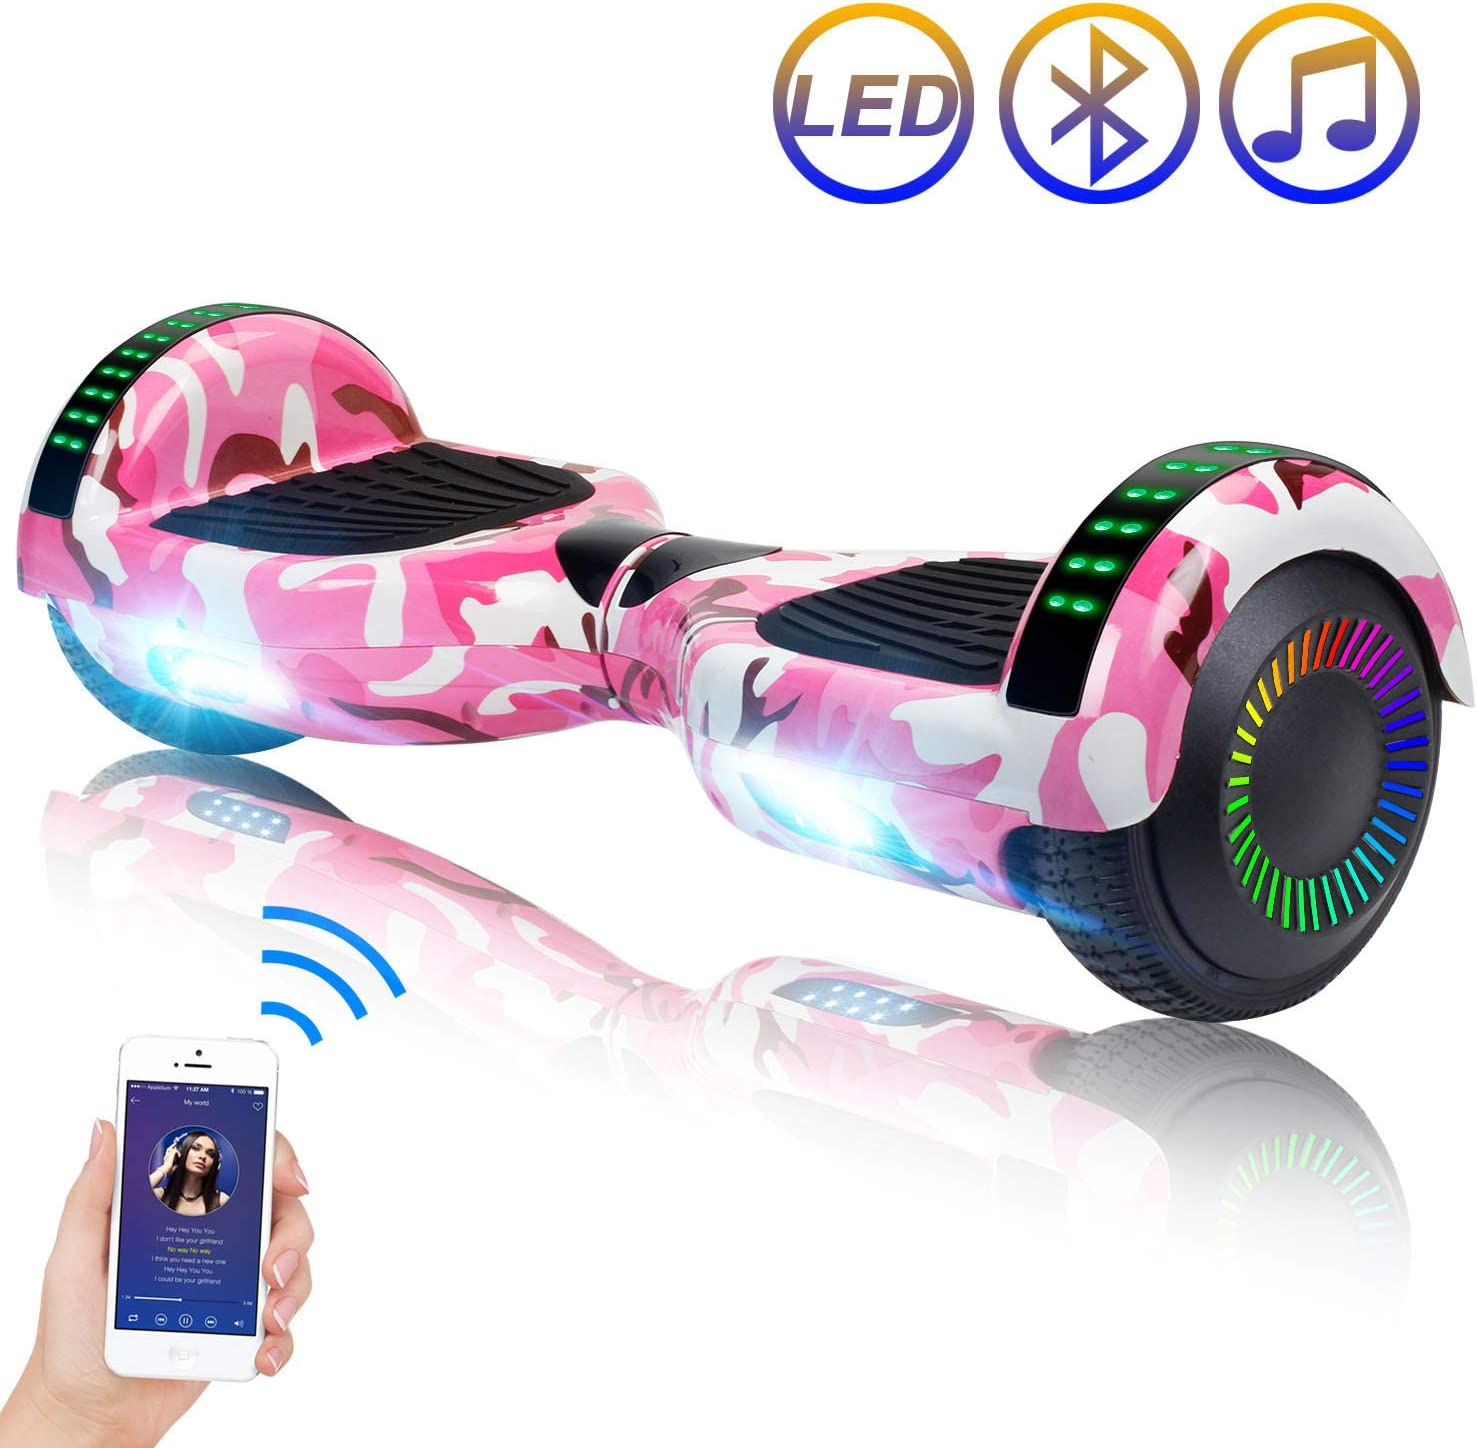 Top 18 Best Hoverboard For Kids (2020 Reviews & Buying Guide) 15